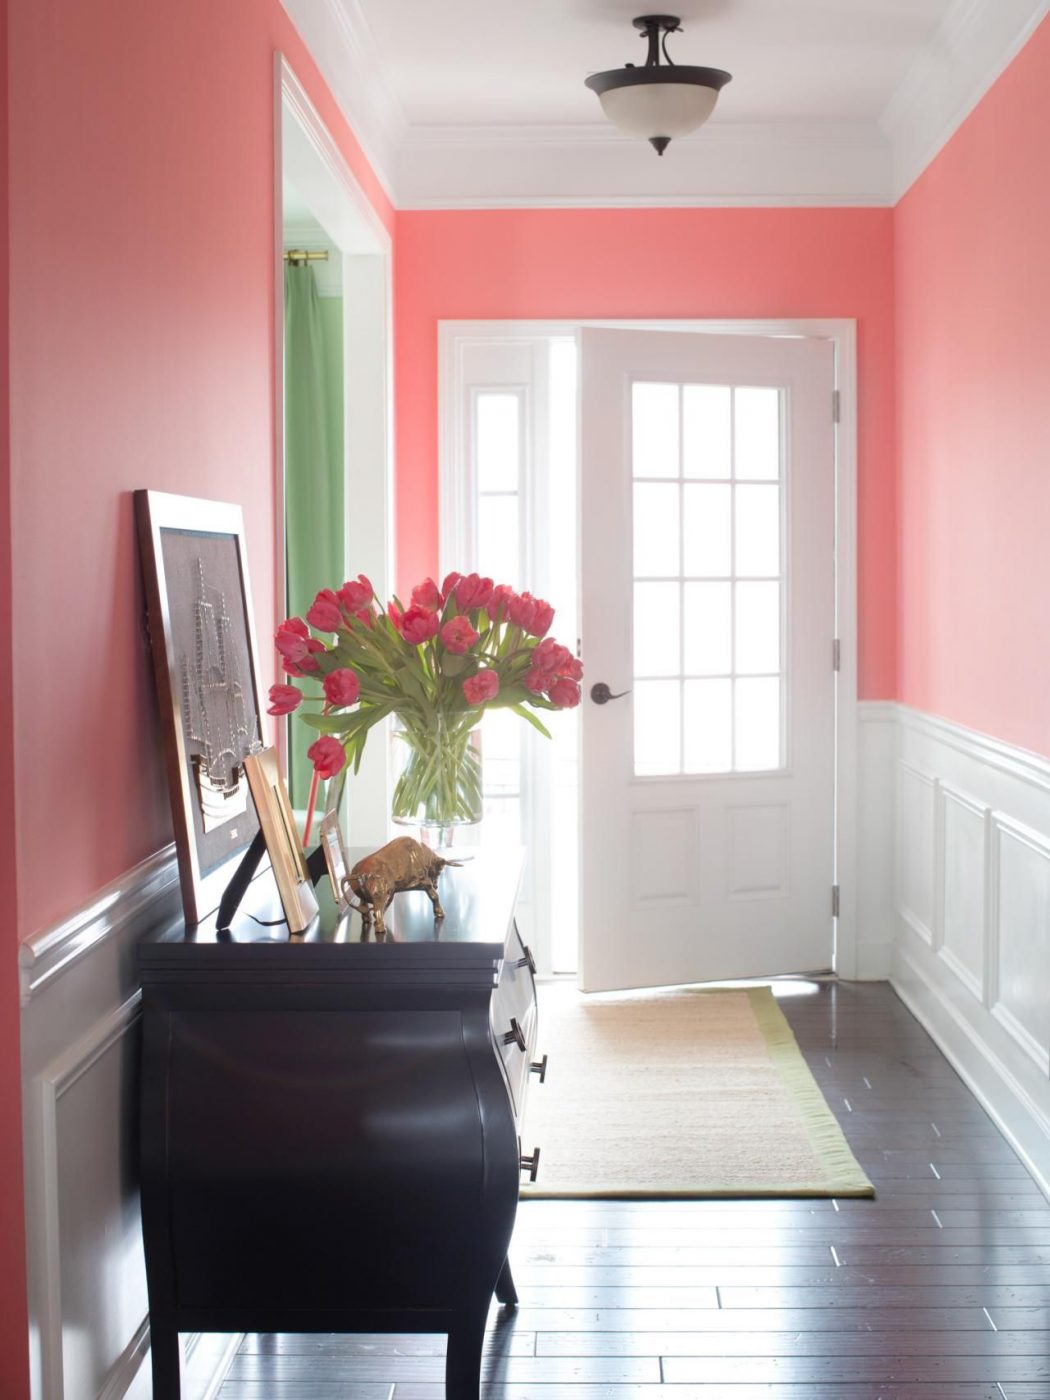 Hallway-pink-shade-paint 10 Ways to Add Glam to Your Hollywood Home